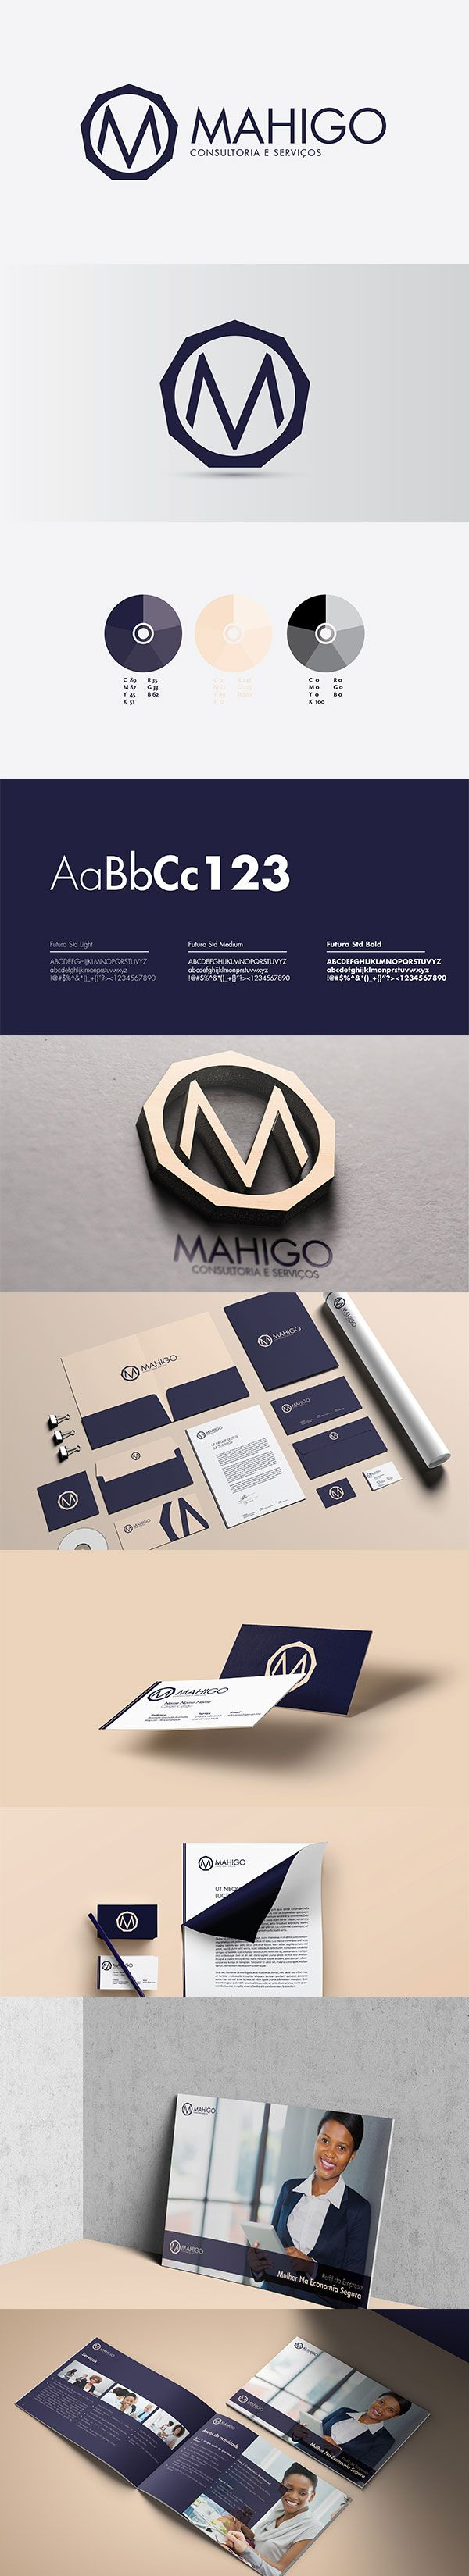 Mahigo is a newly established consulting company specialized in gender equality and women empowerment. They provide national and international consultancy services that promote female entrepreneurship. They also provide micro credit for female start ups. Thus, the brand was developed with the feminine audience in mind. Luxurious and bold color pallets and typography were used.  Enjoy!